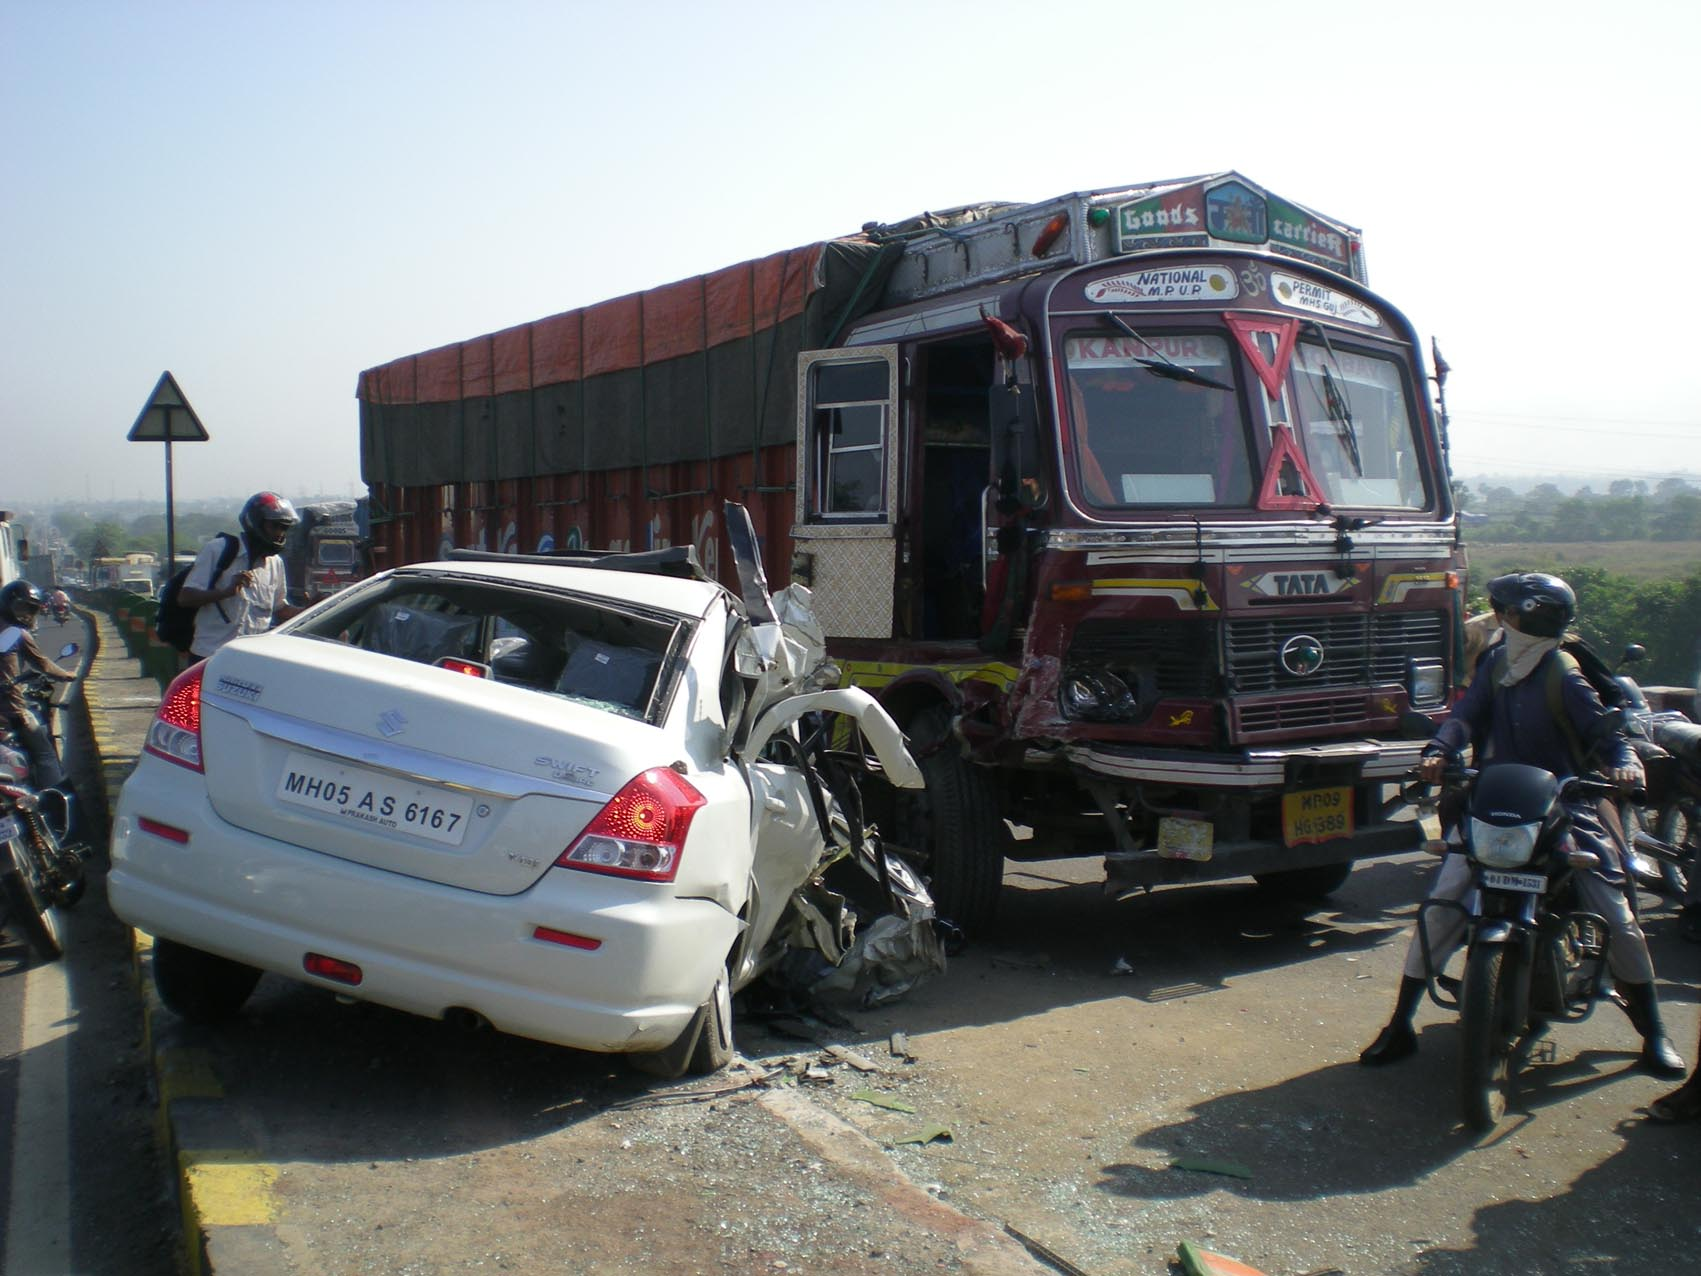 road accidents without regular license